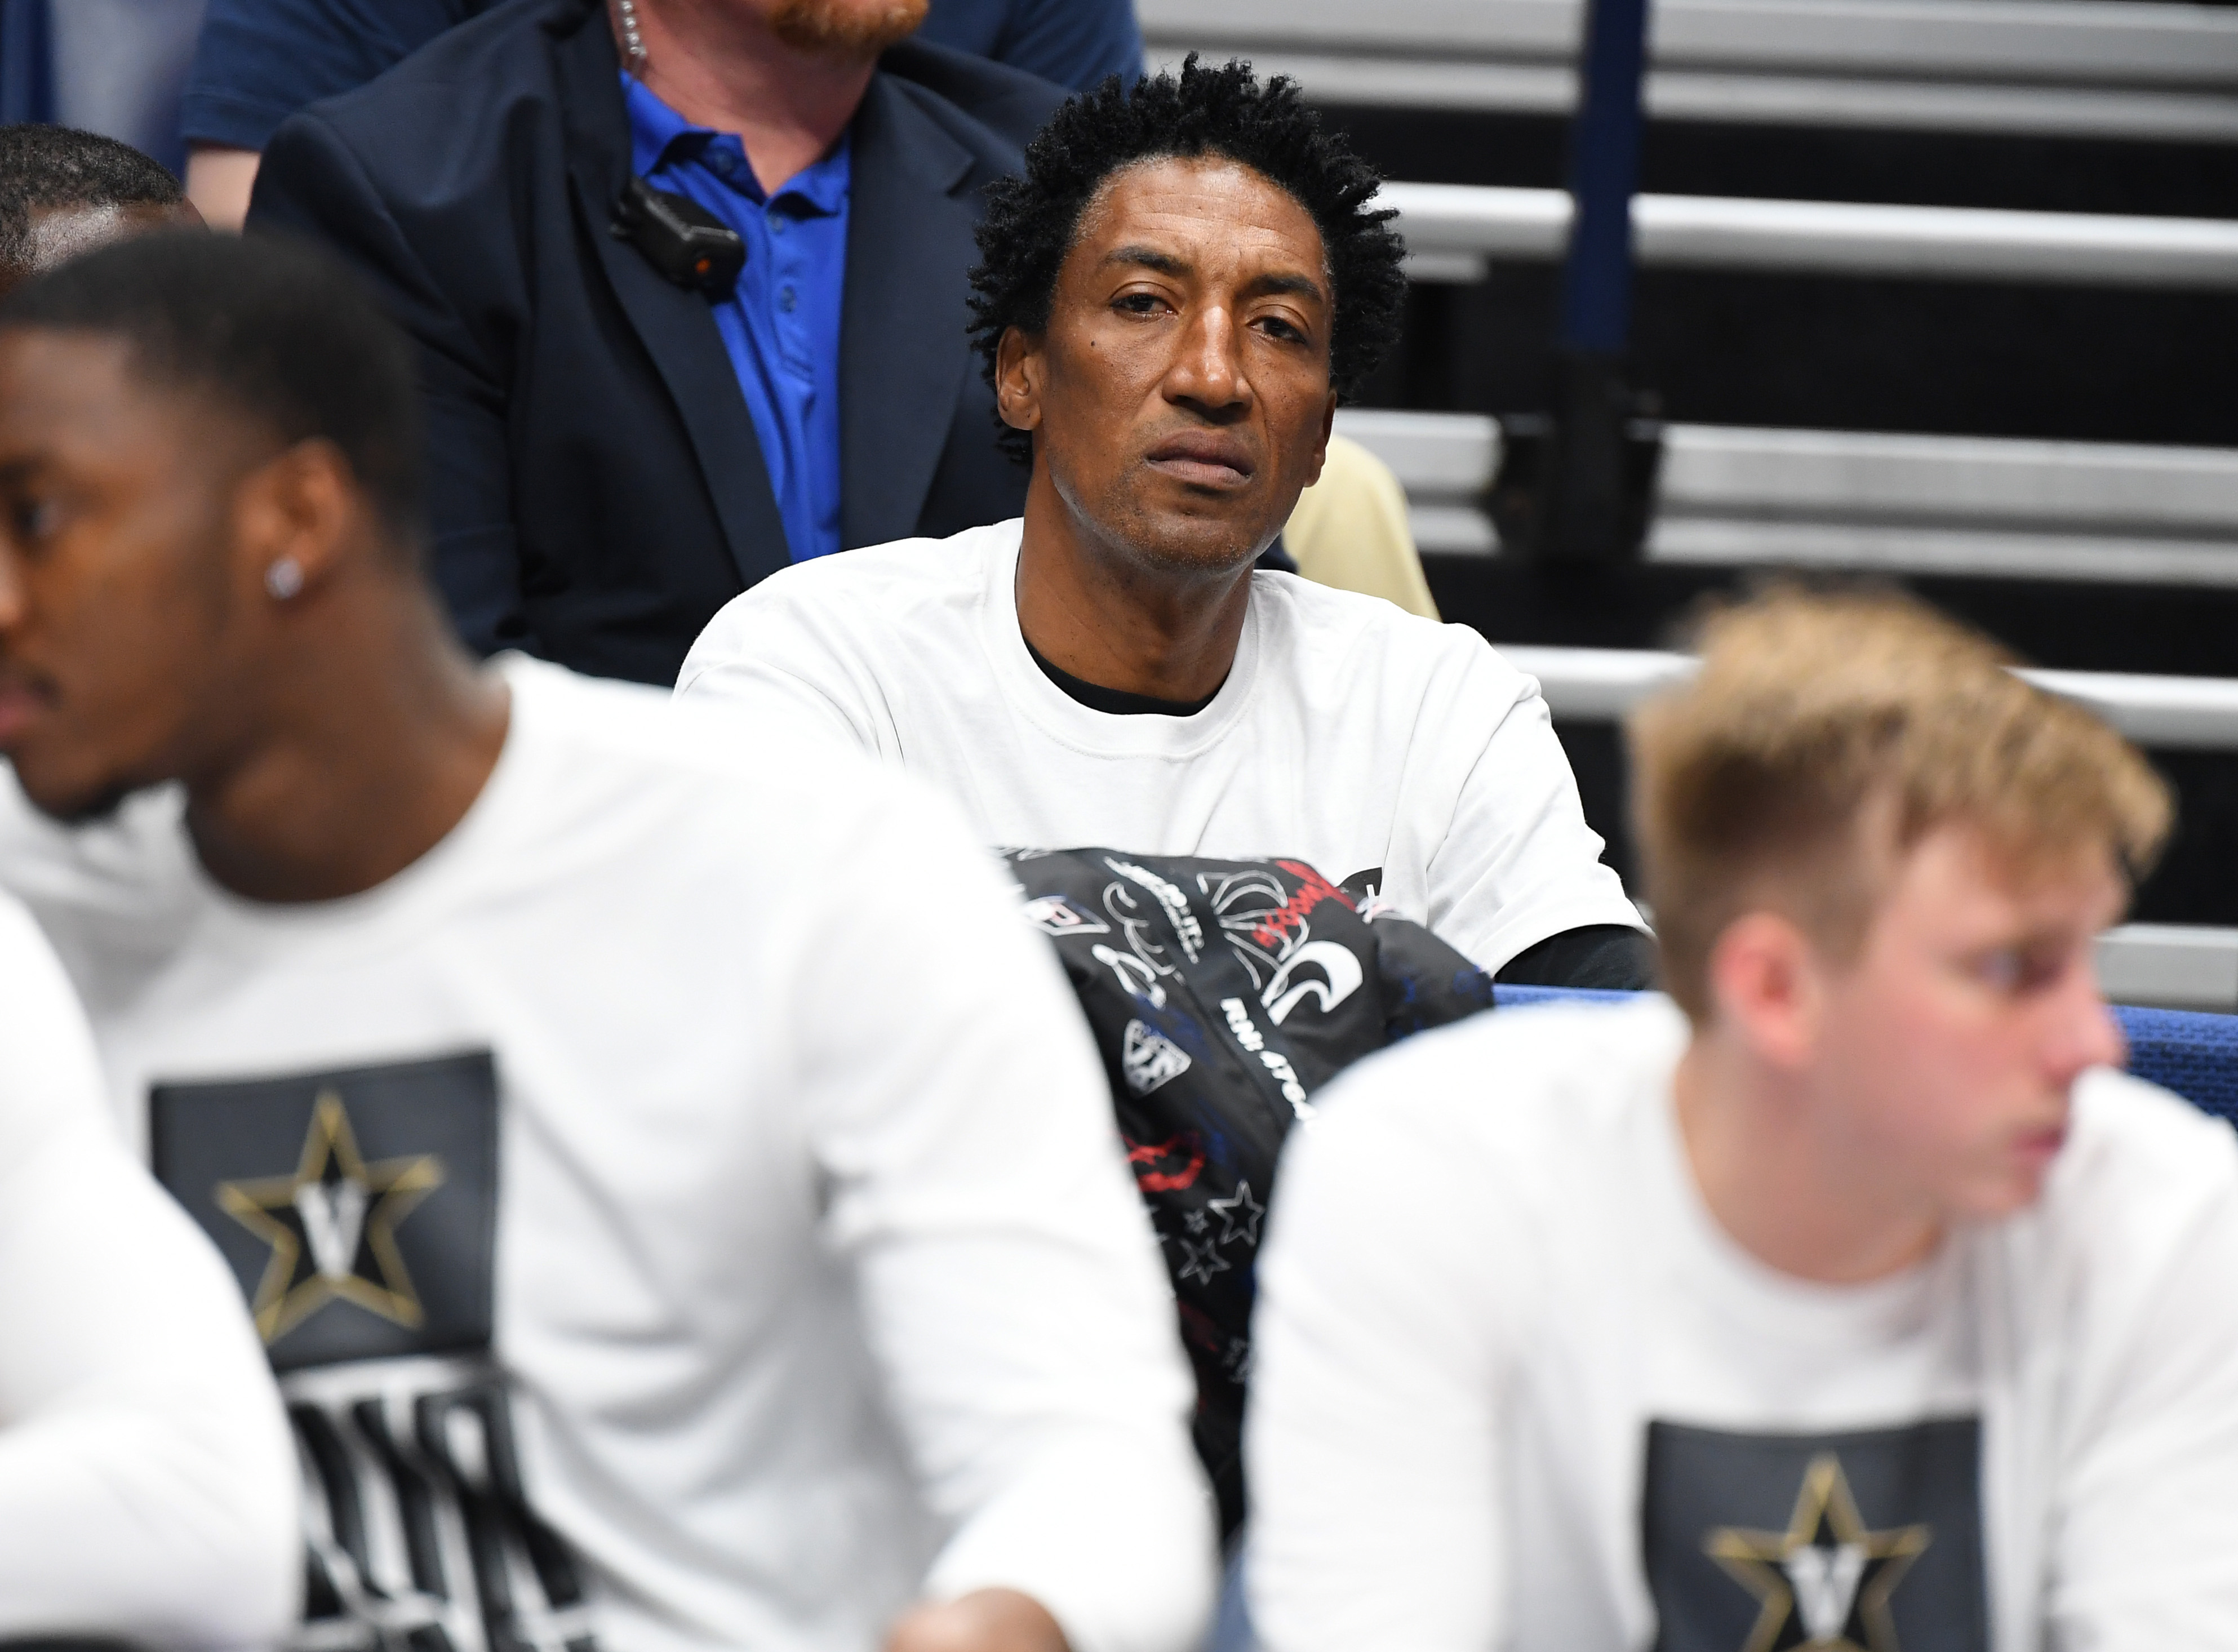 Scottie Pippen 'so angry' at Michael Jordan over portrayal in 'The Last Dance'